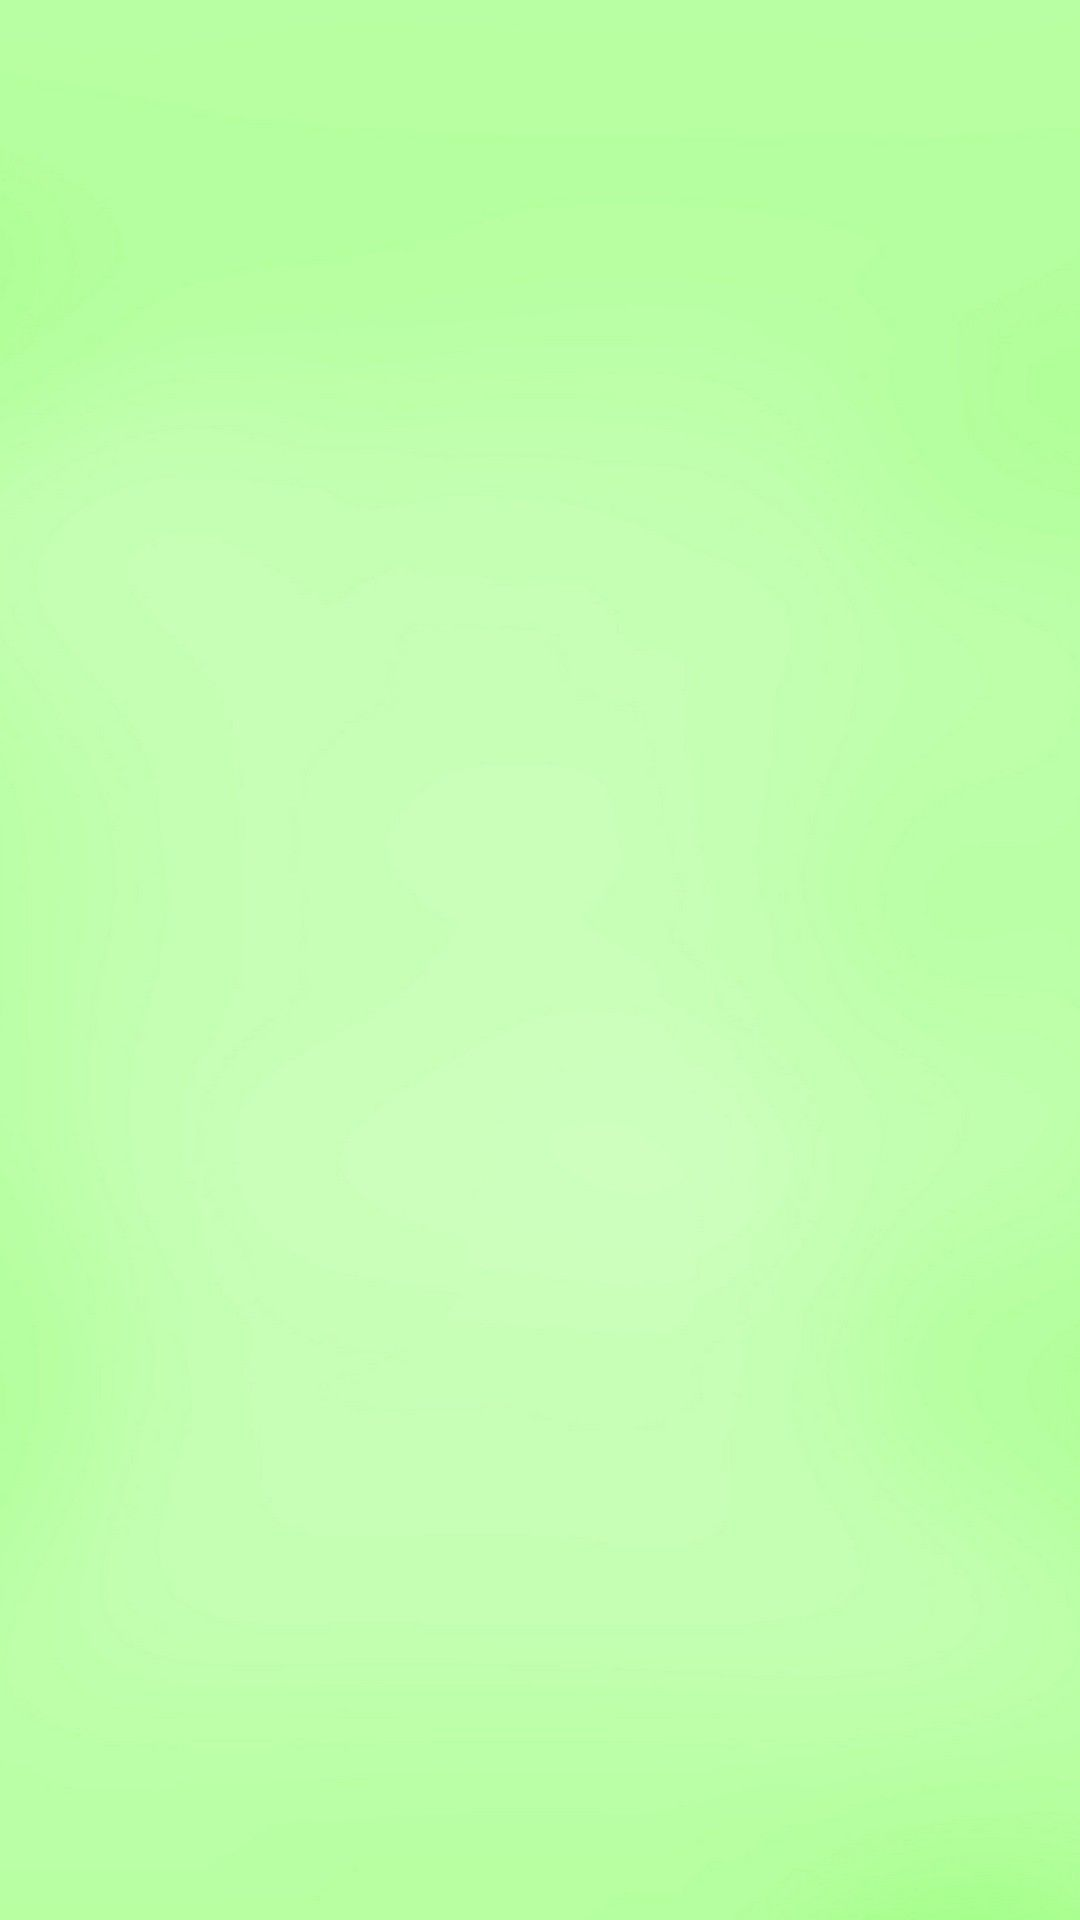 Wallpaper Light Green Android Best Mobile Wallpaper Solid Color Backgrounds Pretty Colours Color